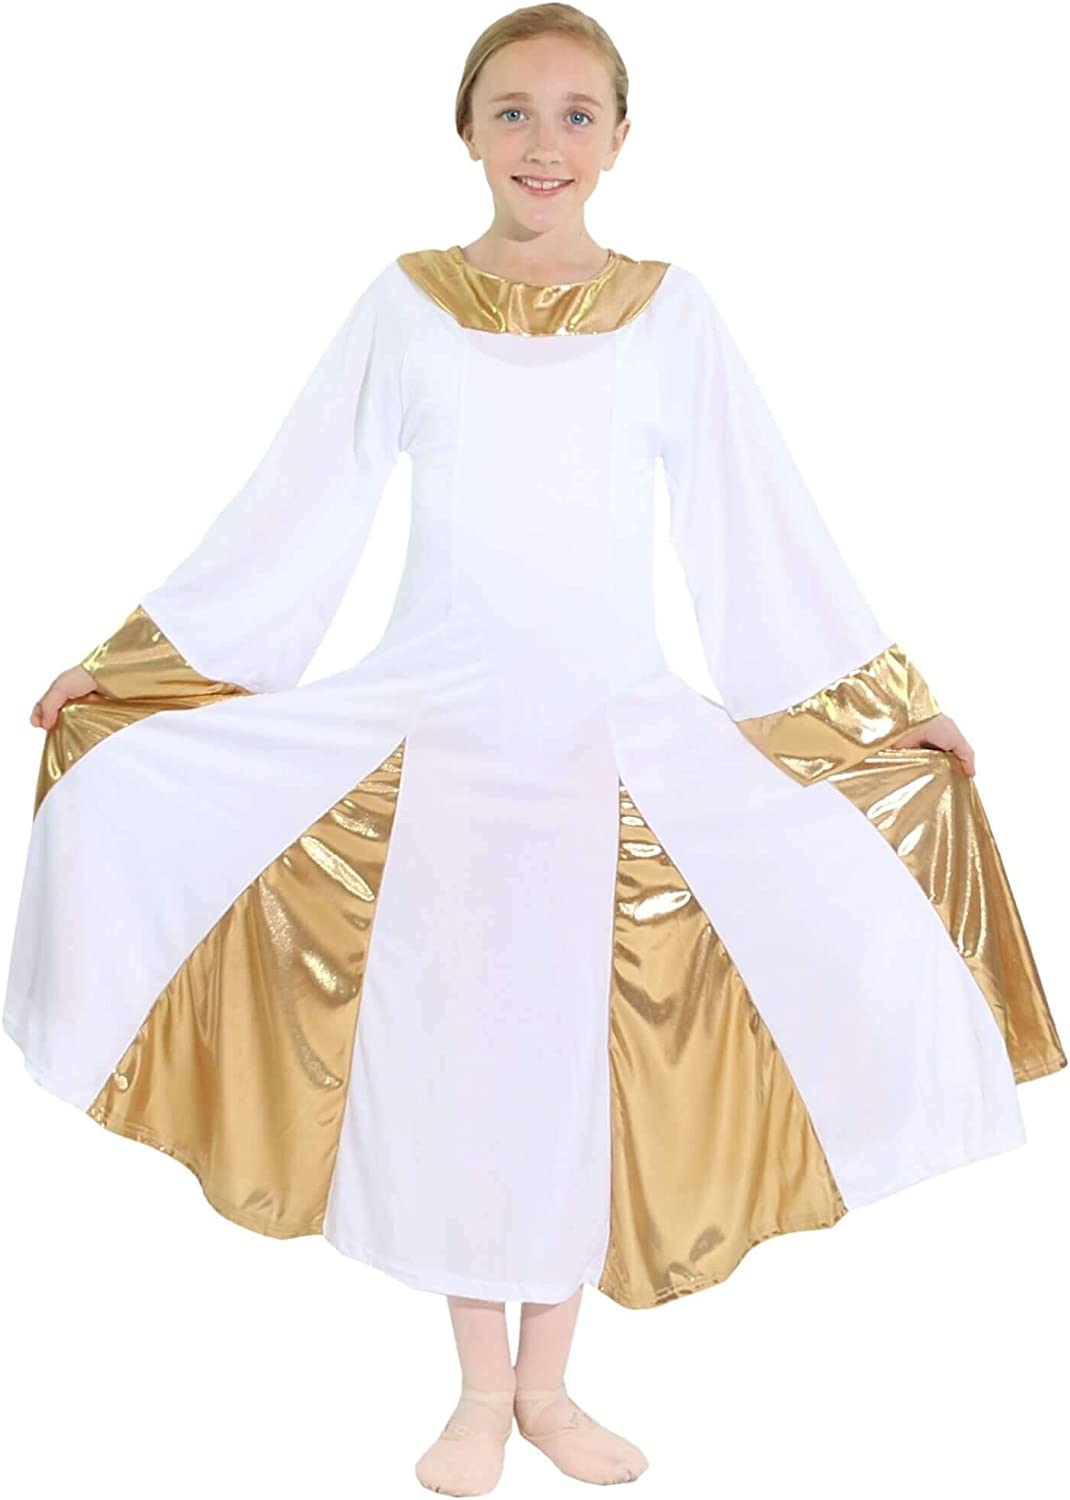 Danzcue Safety and trust Dealing full price reduction Girls Praise Robe Dress